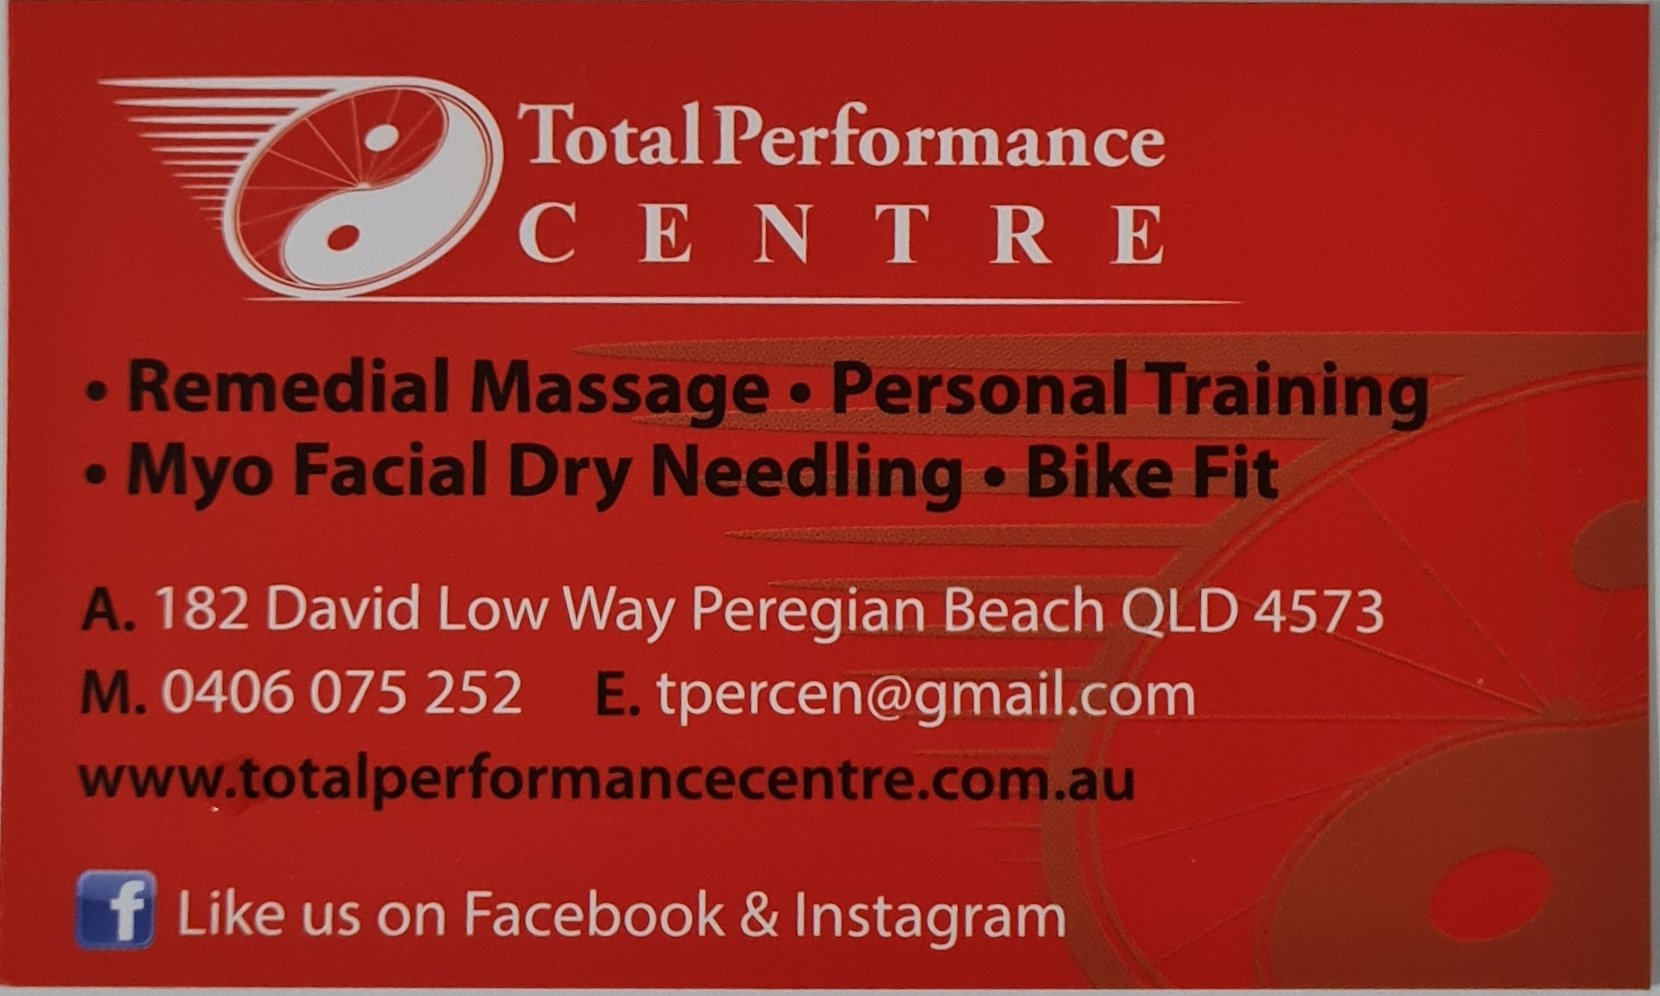 Total Performance Centre